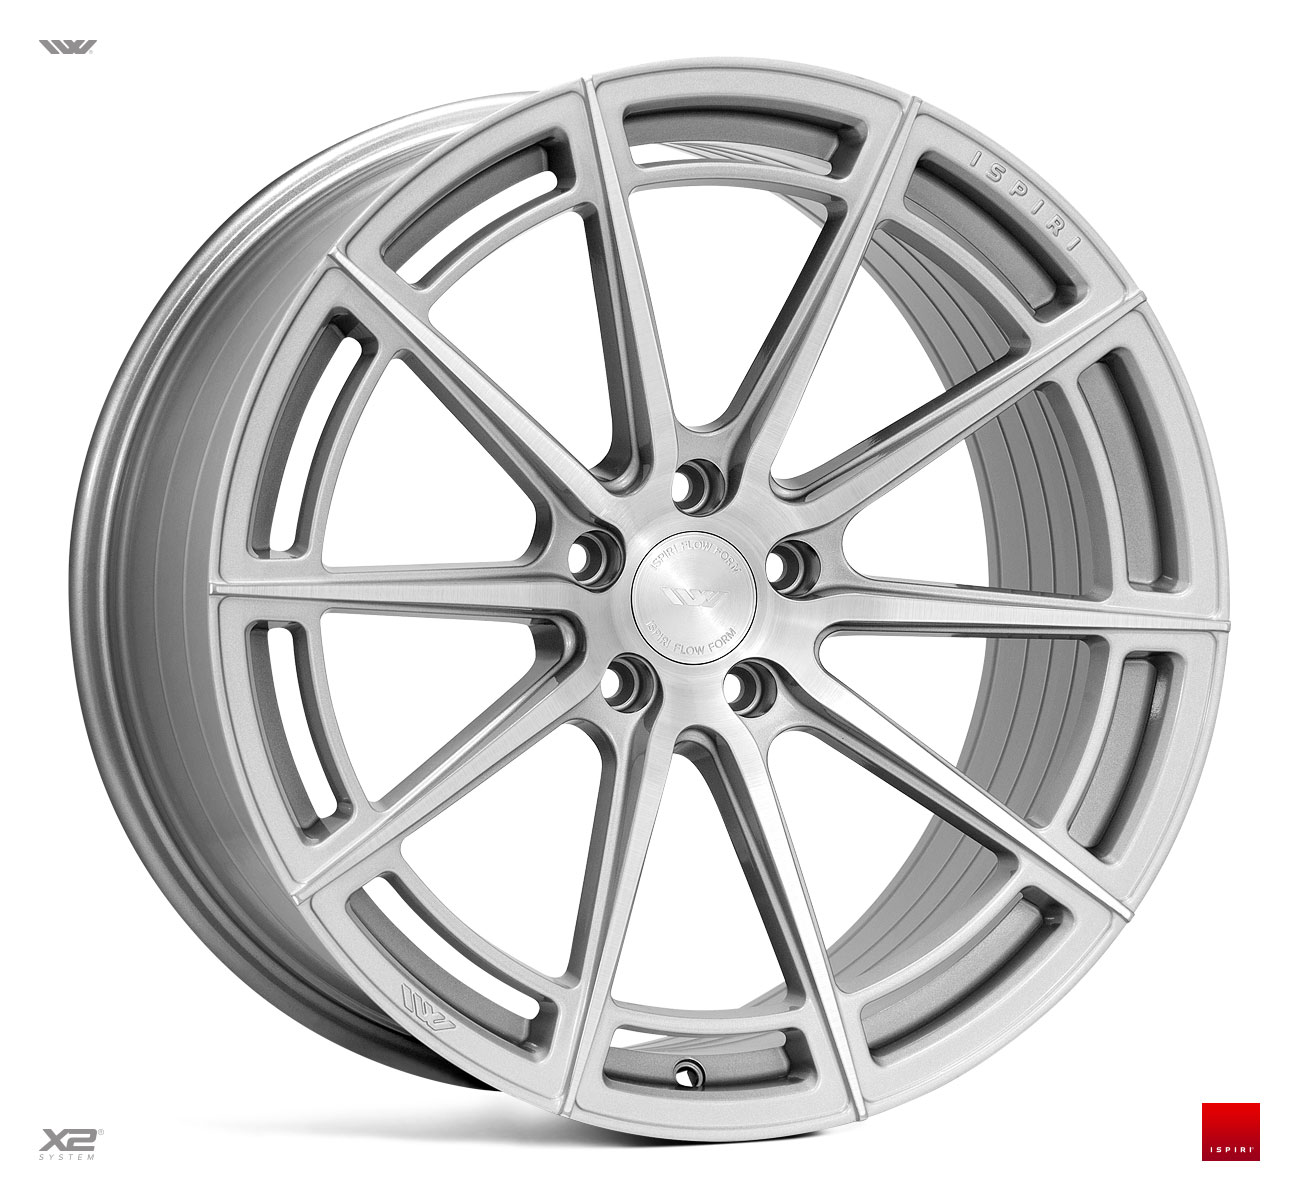 "NEW 20"" ISPIRI FFR2 MULTI-SPOKE ALLOY WHEELS IN PURE SILVER BRUSHED, WIDER 10"" REAR"